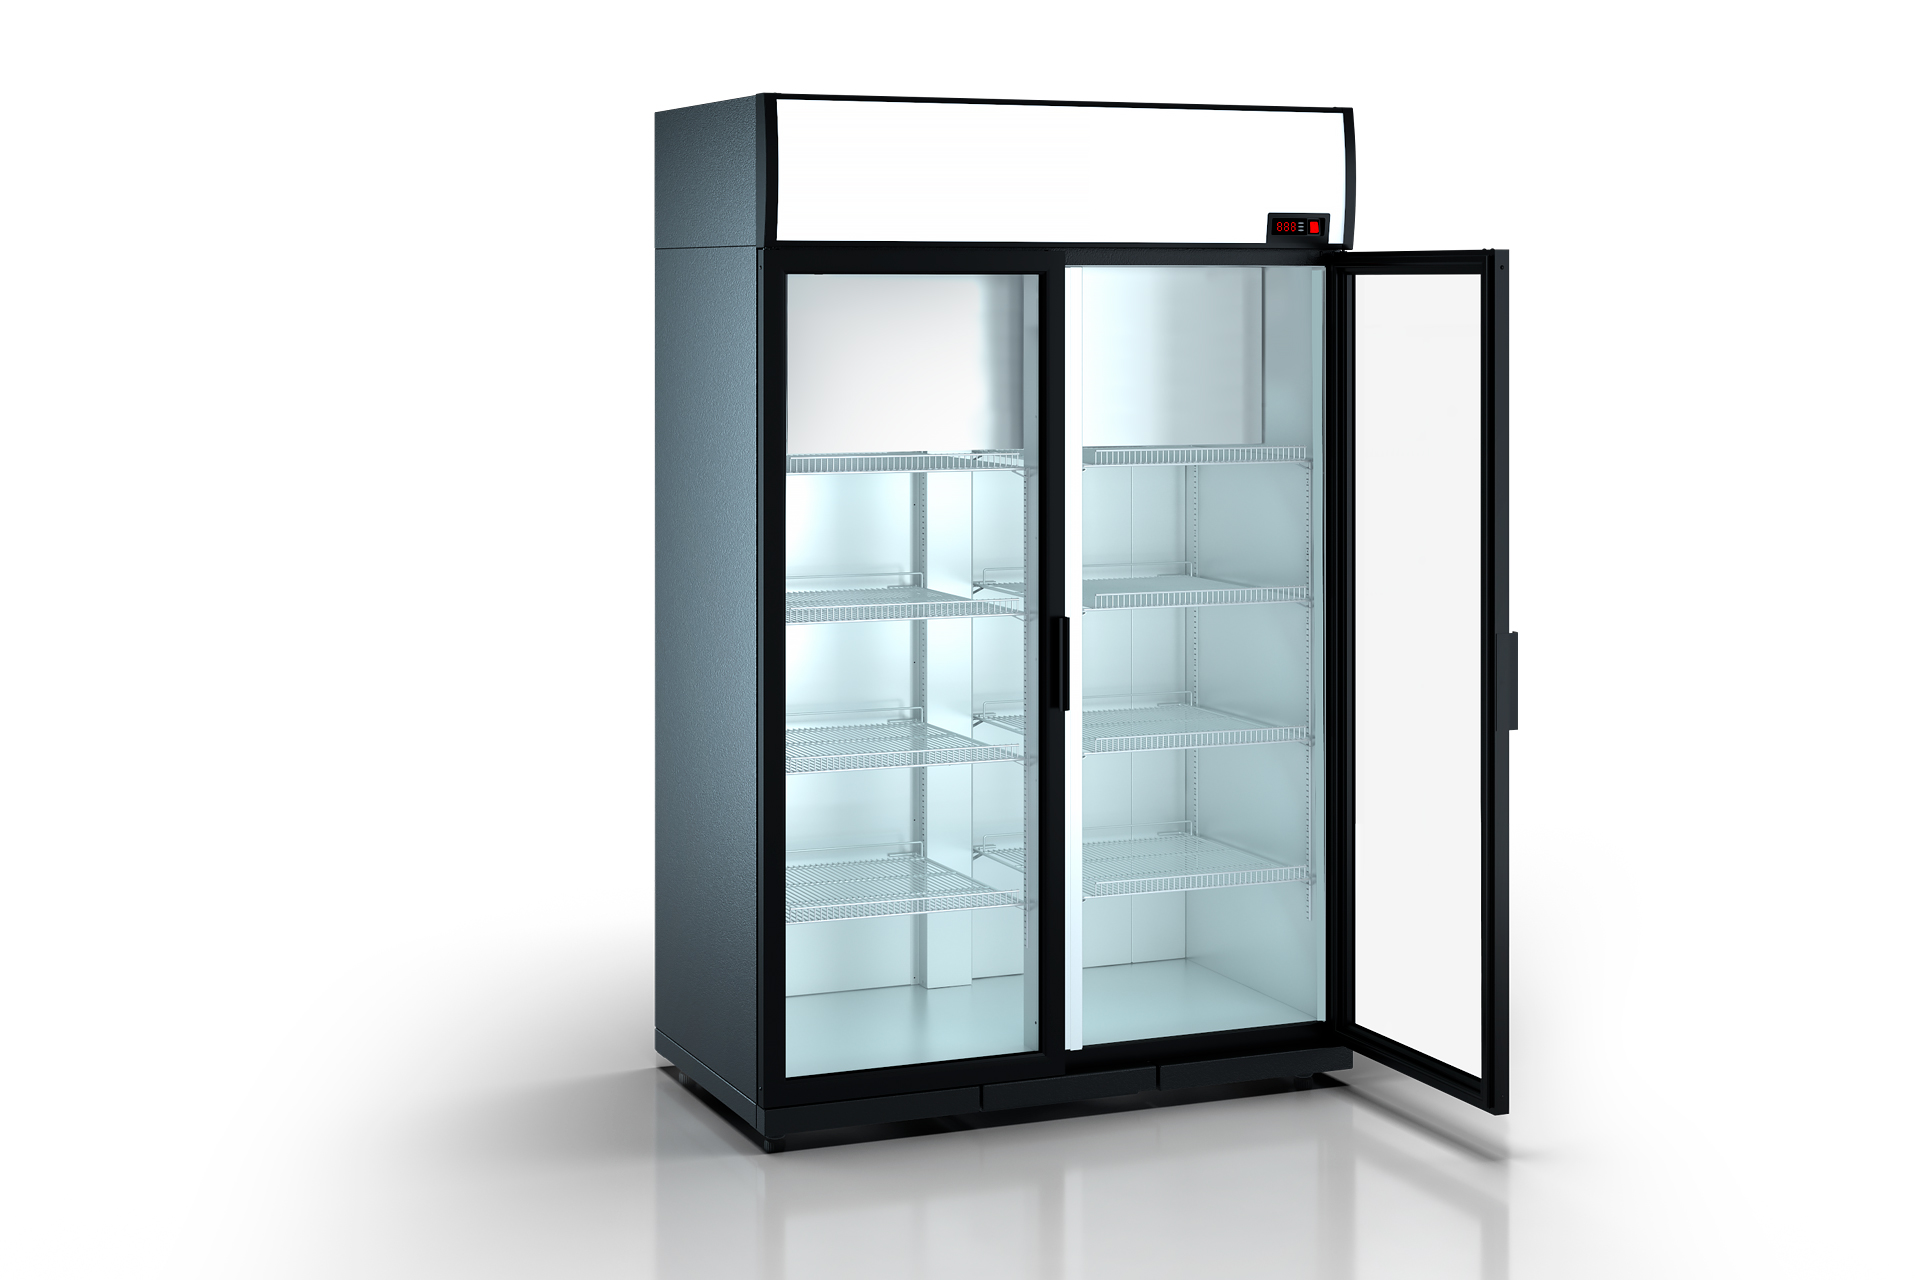 Refrigerated cabinets Kansas VА1SG 075 HT 2HD 210-S1200A-132